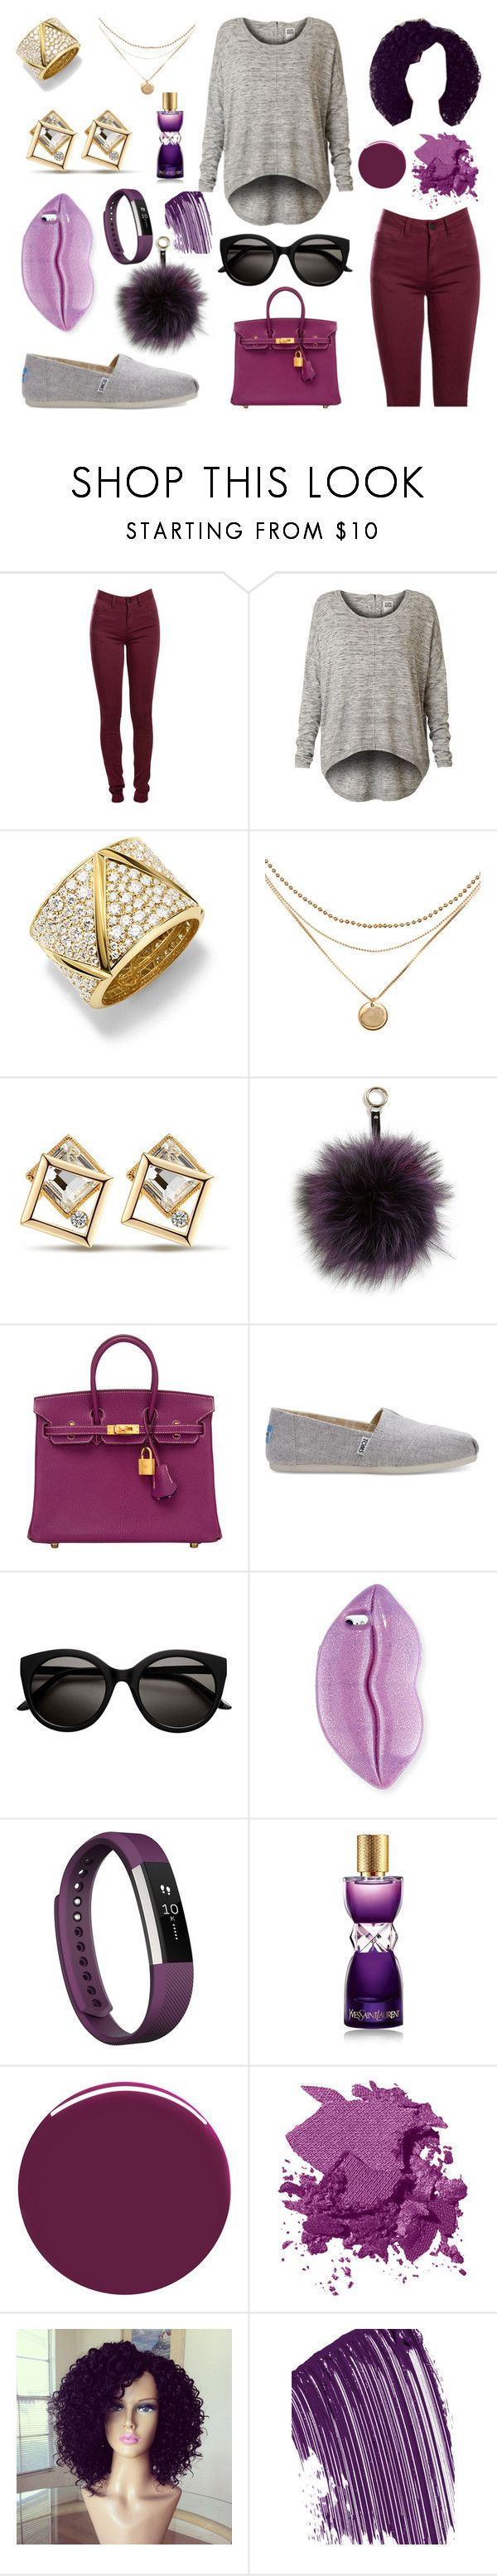 """""""CPLE"""" by highlight1 on Polyvore featuring Pieces, Vero Moda, Marina B, Adrienne Landau, Hermès, TOMS, STELLA McCARTNEY, Fitbit, Yves Saint Laurent and Nails Inc."""